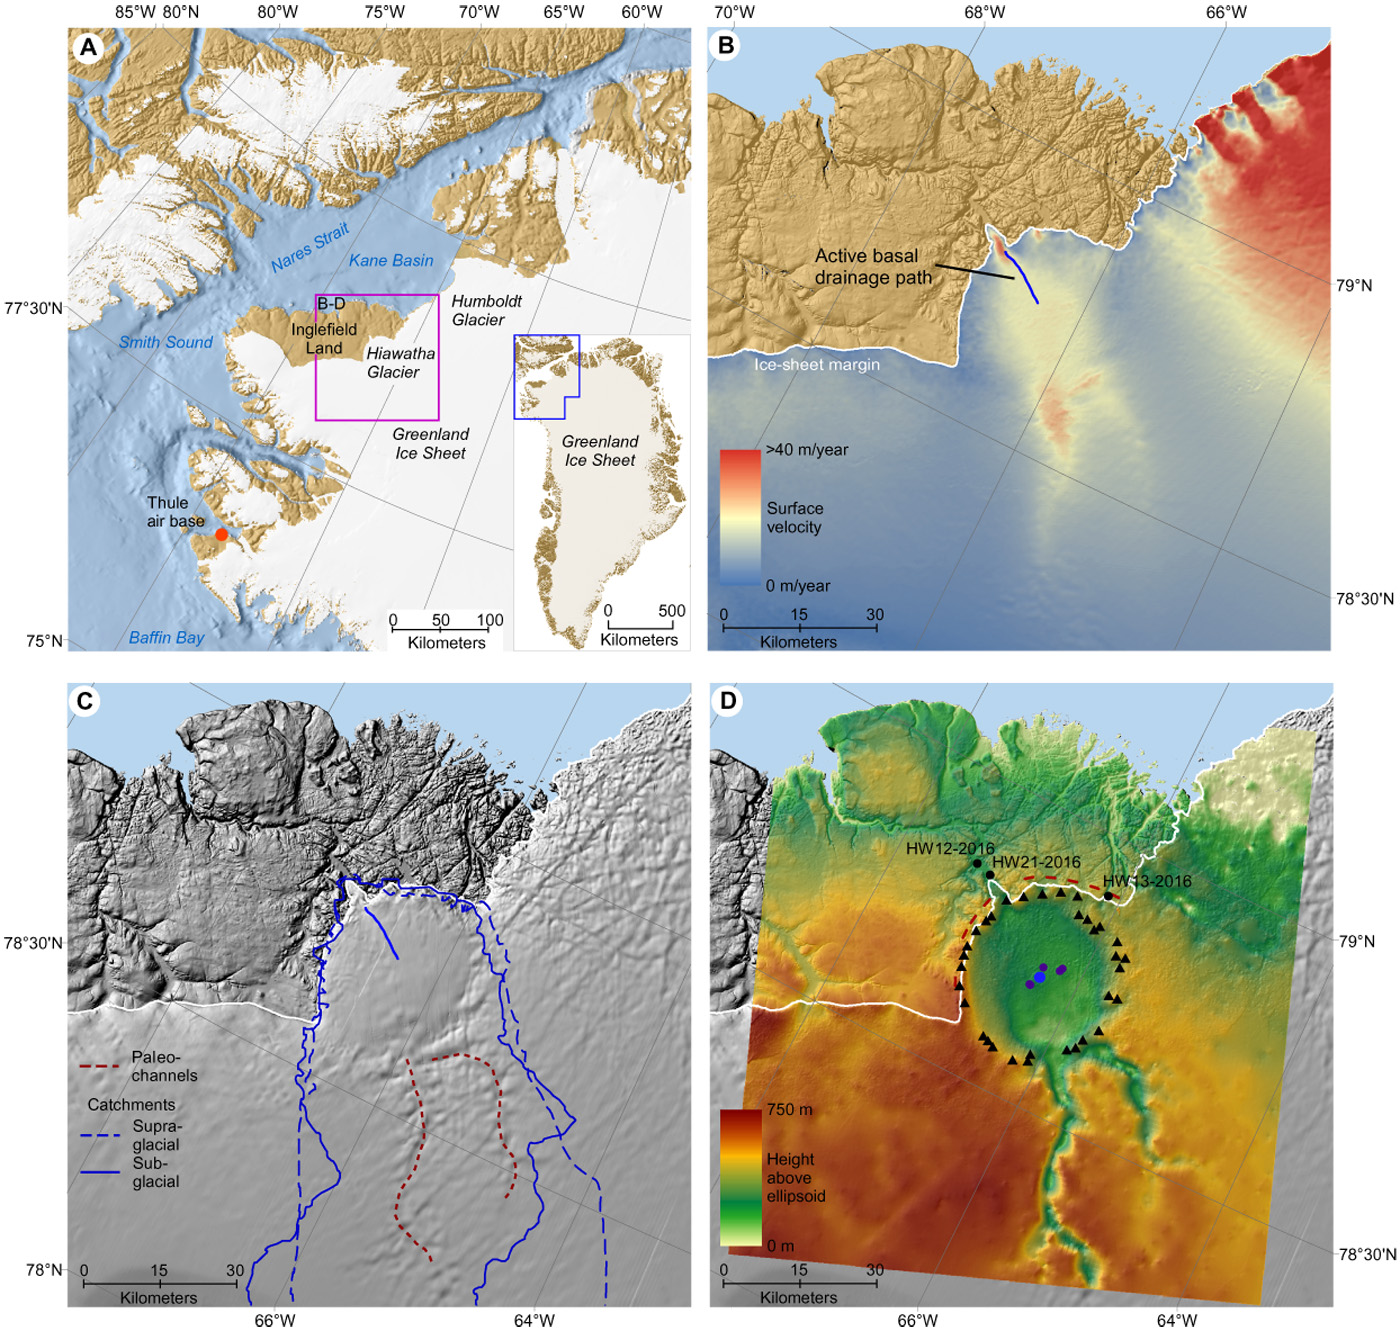 New Impact Crater Discovered Under Greenland | Wooster